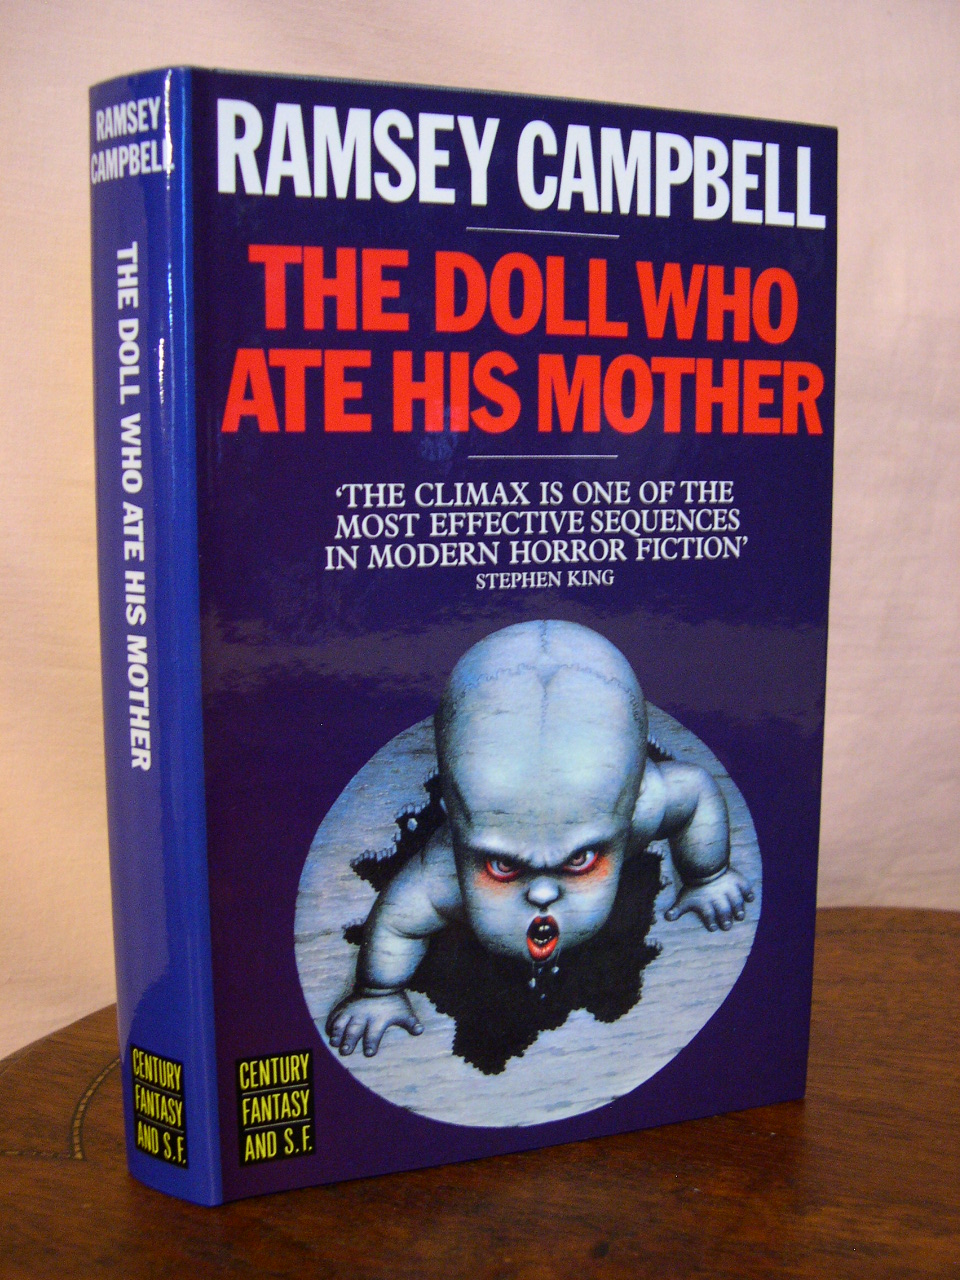 Image result for the doll who ate his mother ramsey campbell